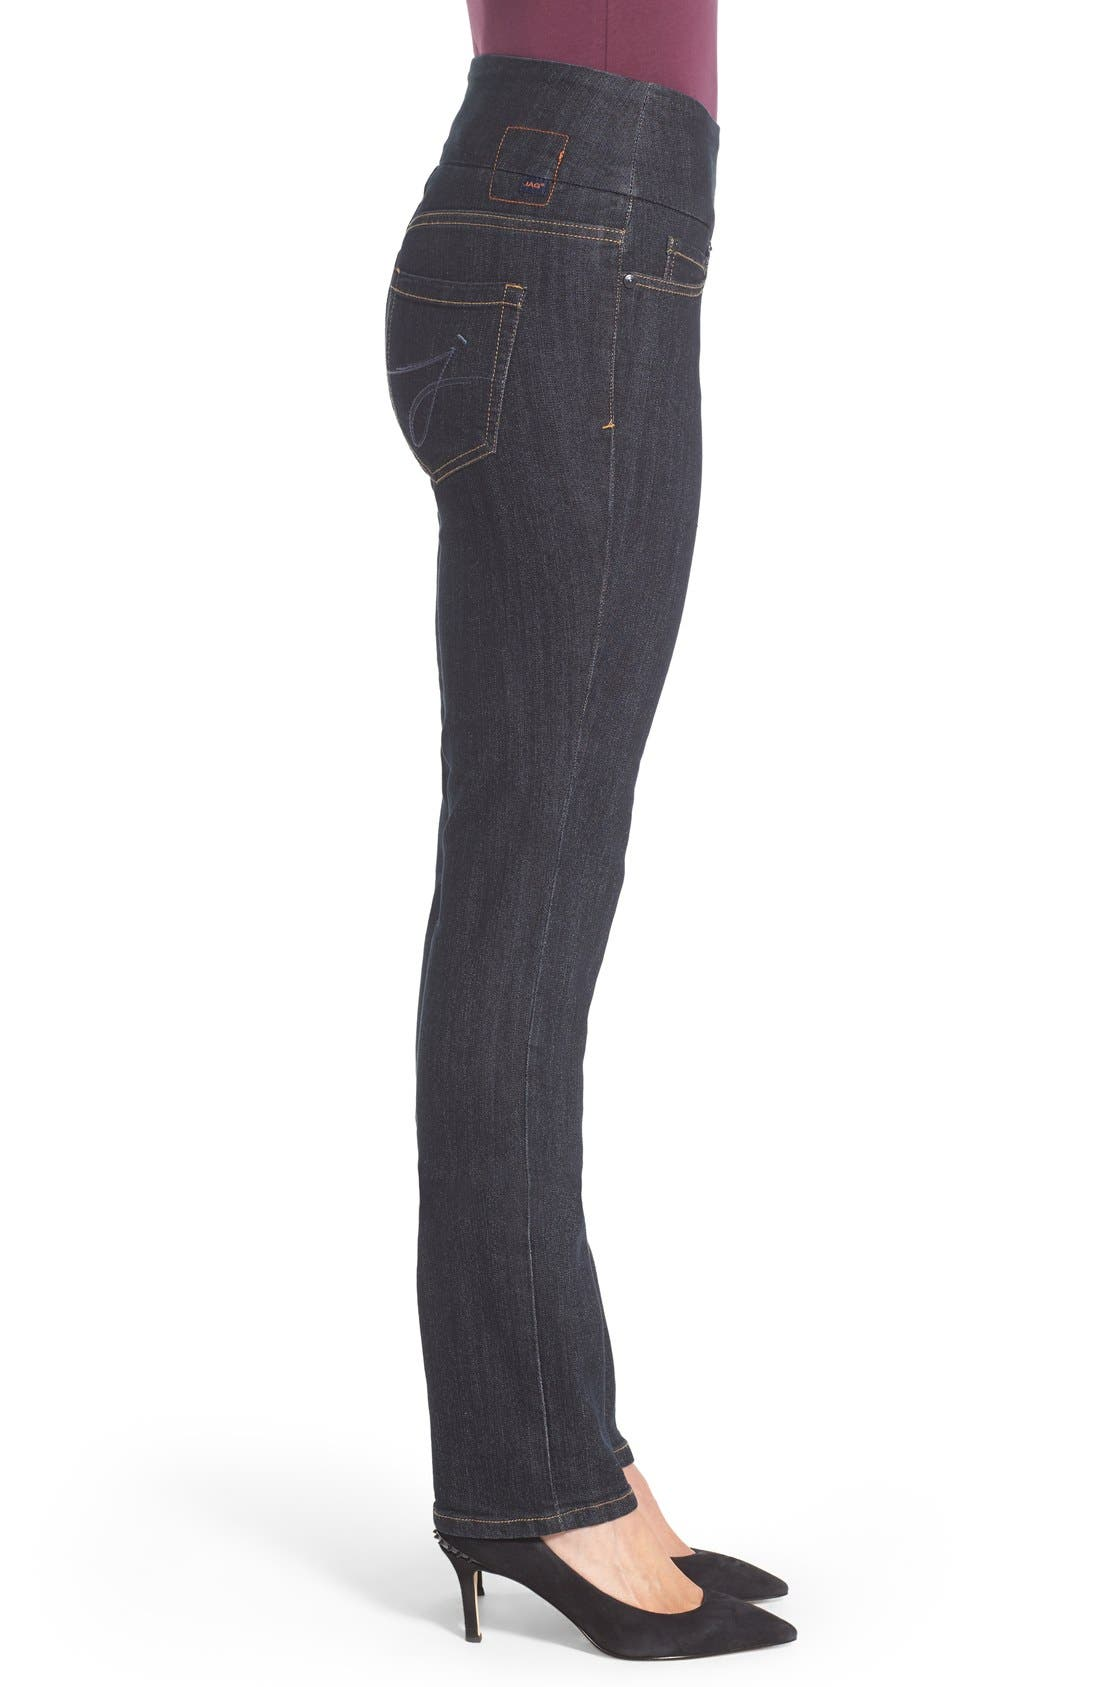 Alternate Image 3  - Jag Jeans 'Peri' Pull-On Stretch Straight Leg Jeans (Late Night) (Regular & Petite) (Online Only)